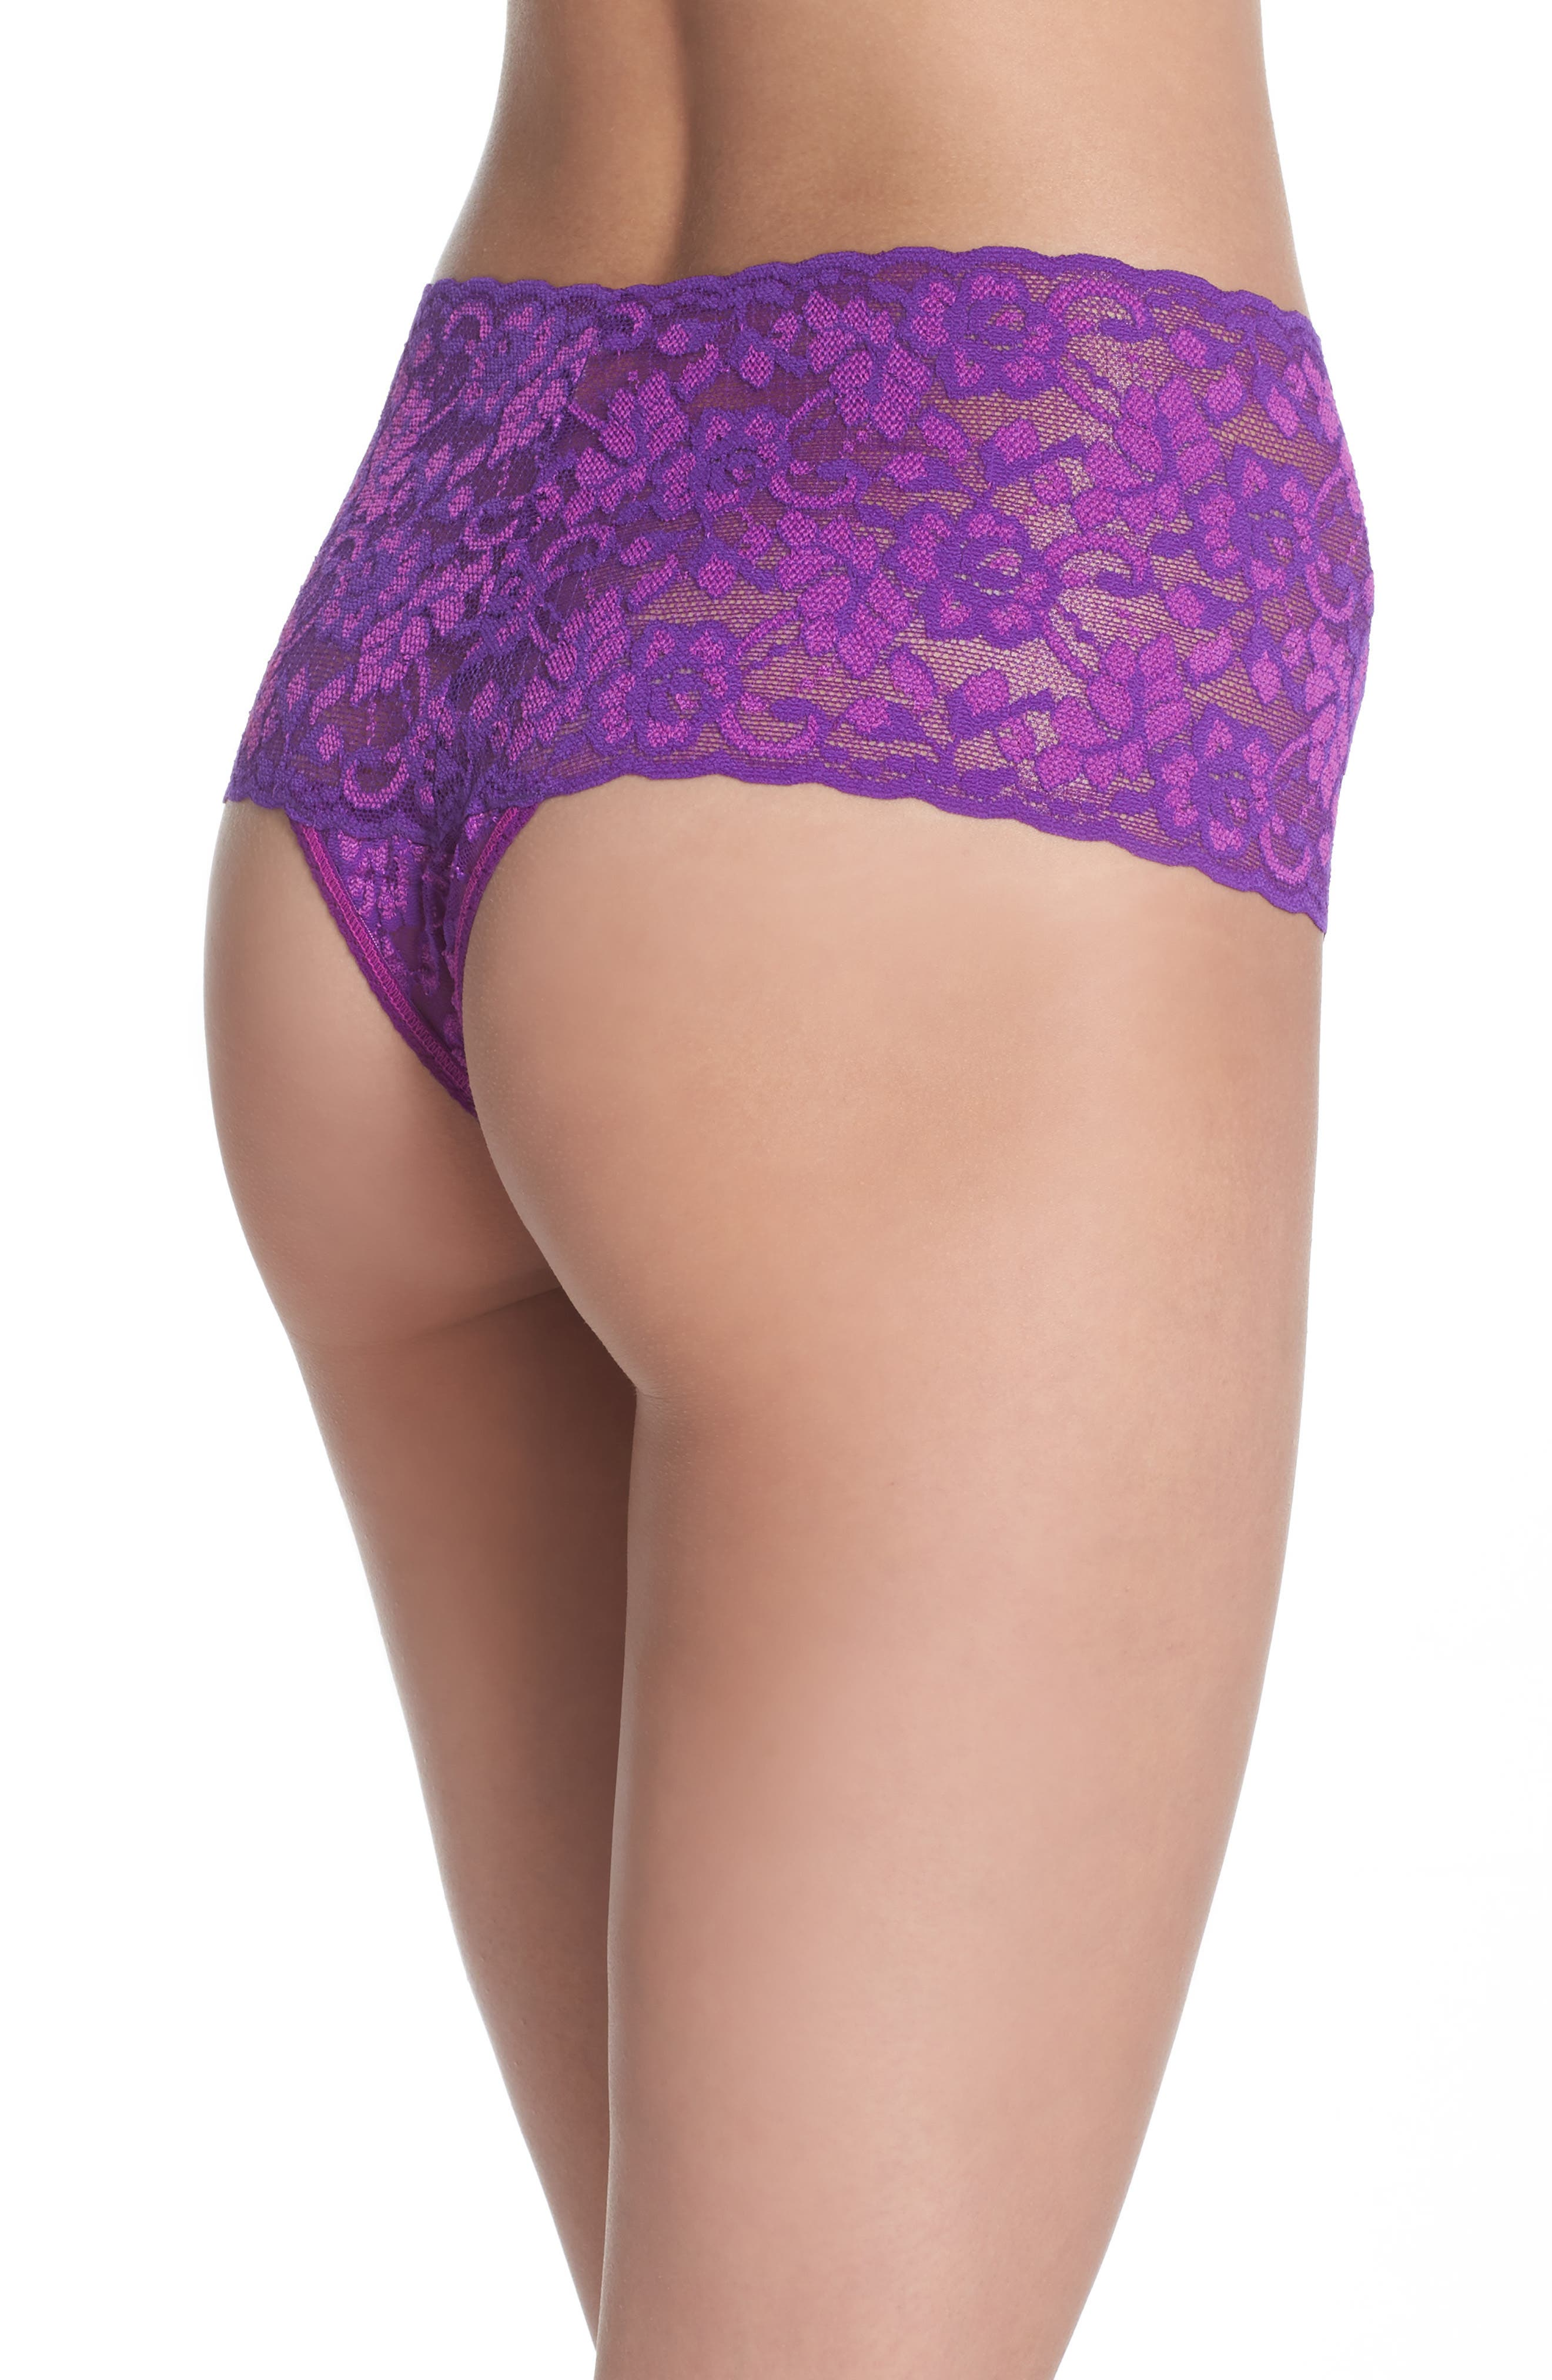 Alternate Image 2  - Hanky Panky Cross Dye Lace Retro Thong